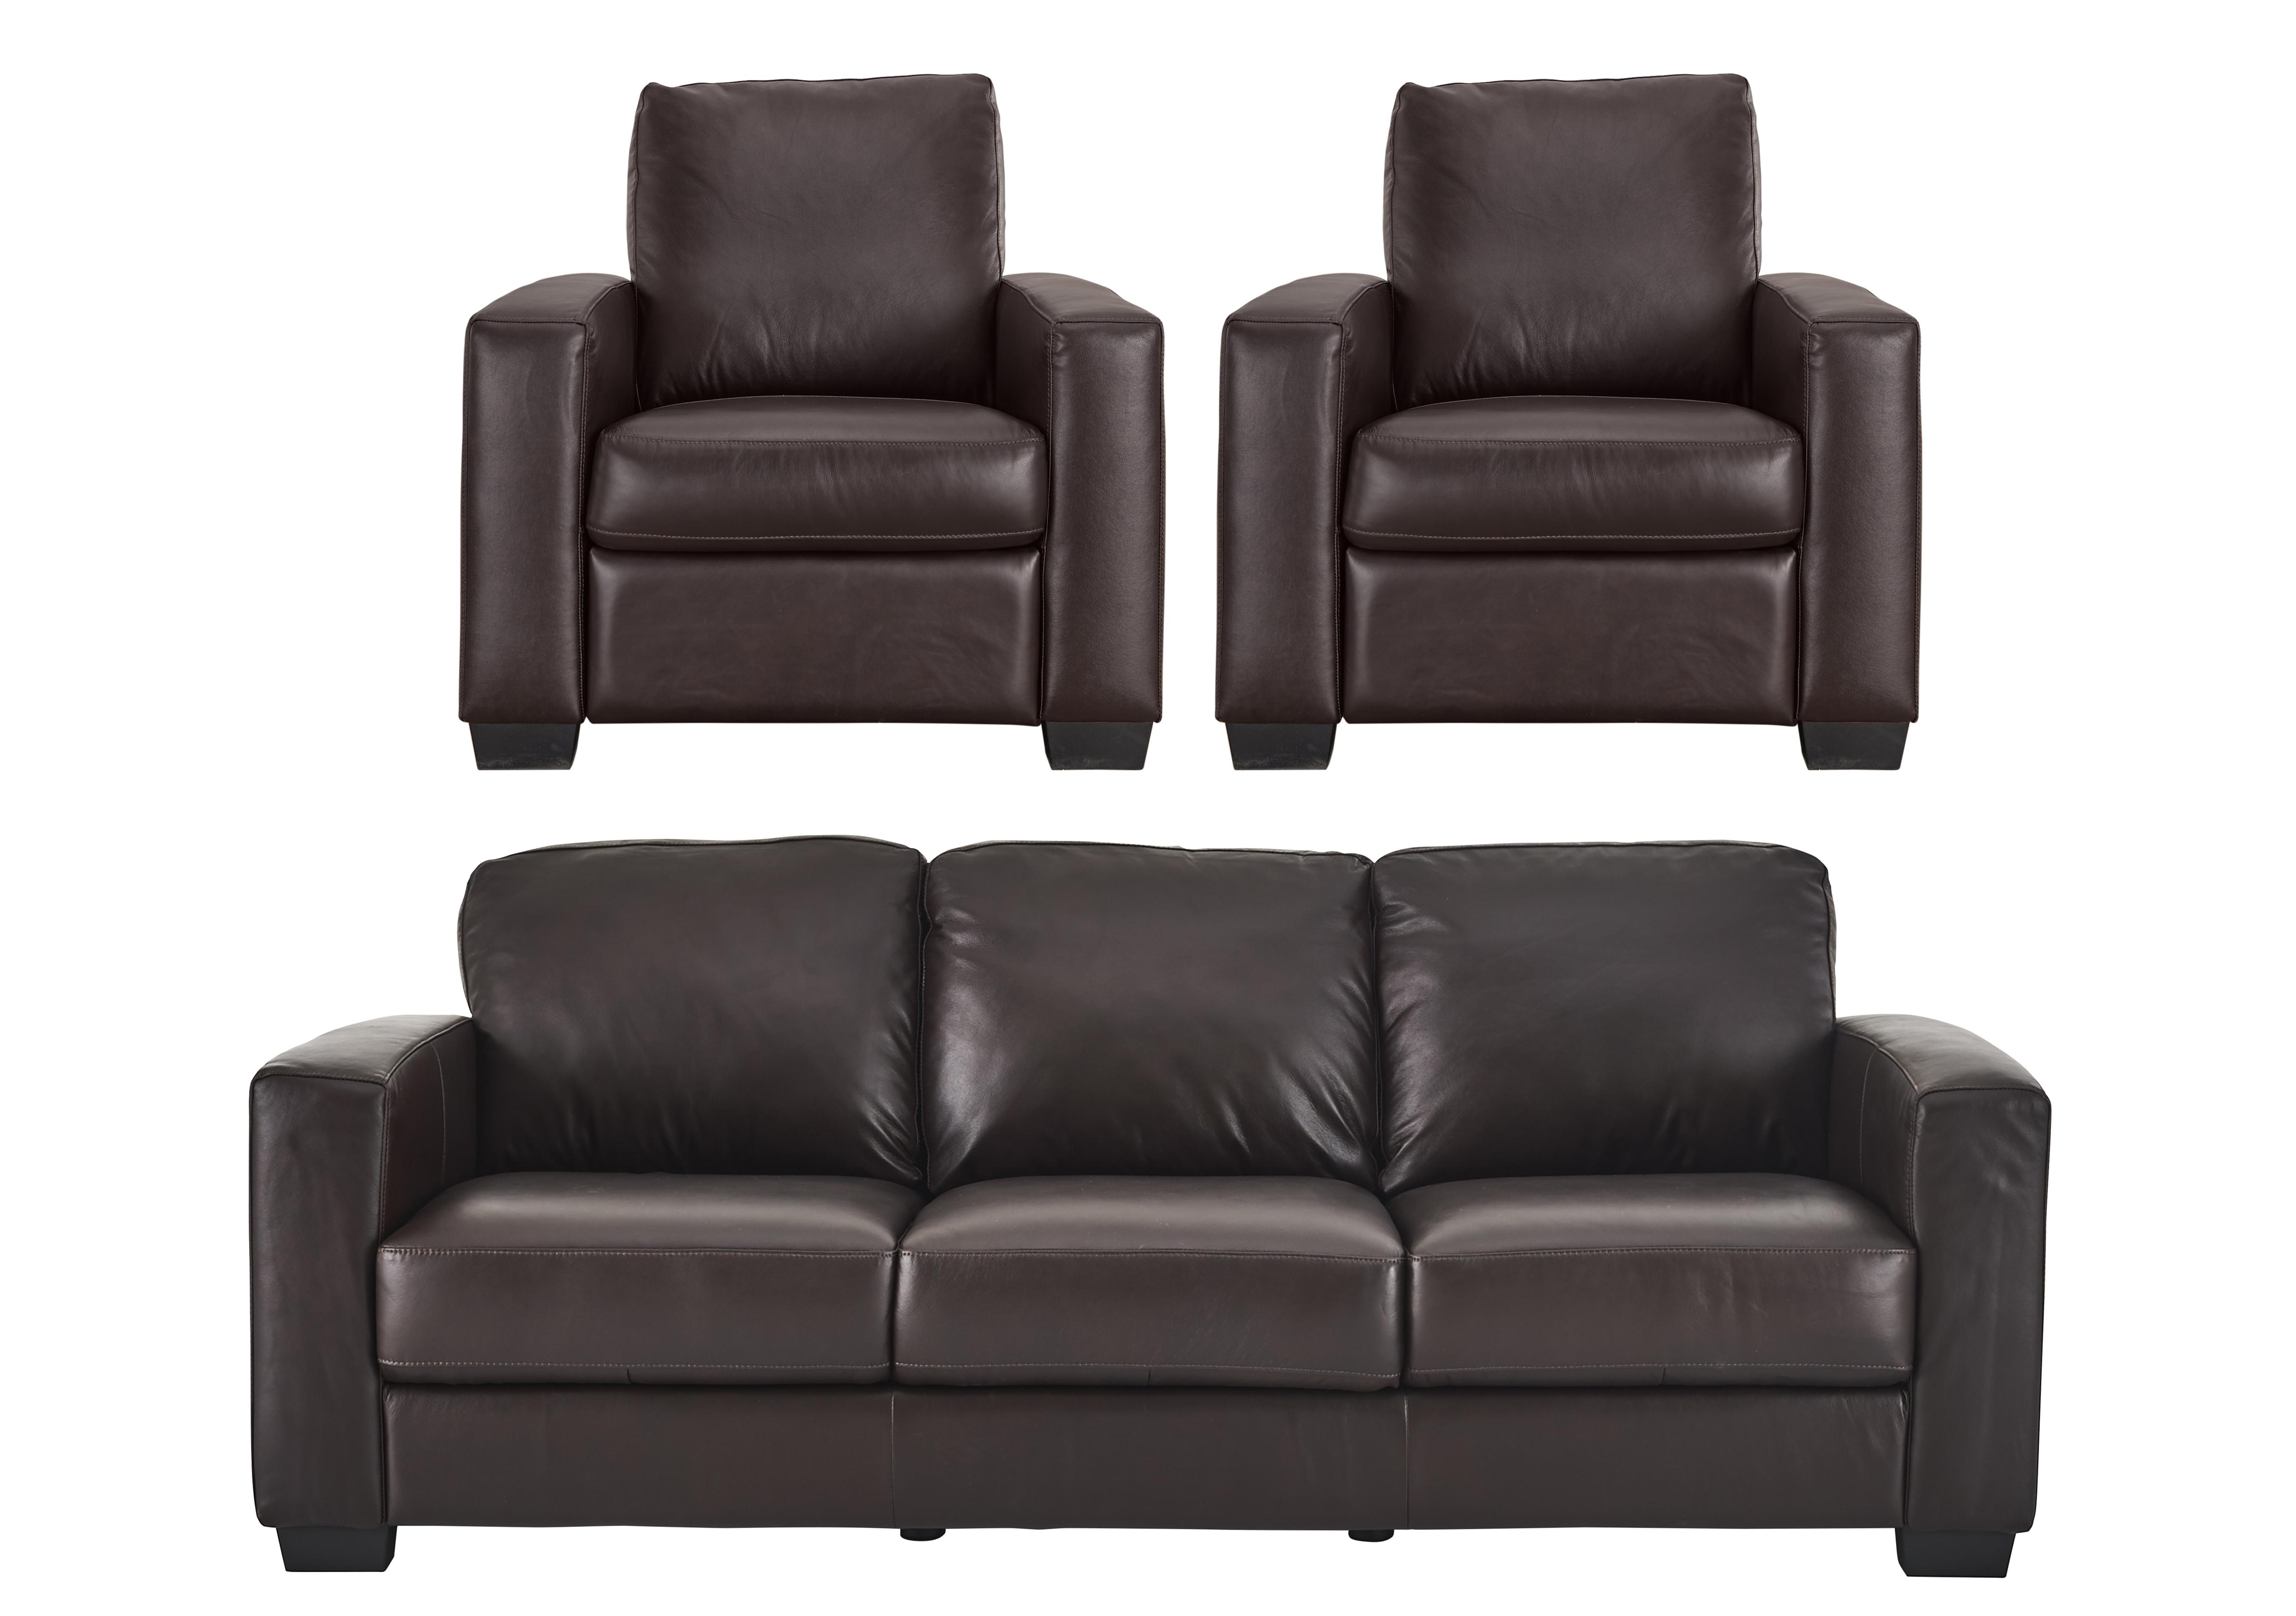 Dante 3 Leather Seater Sofa 2 Armchairs Furniture Village